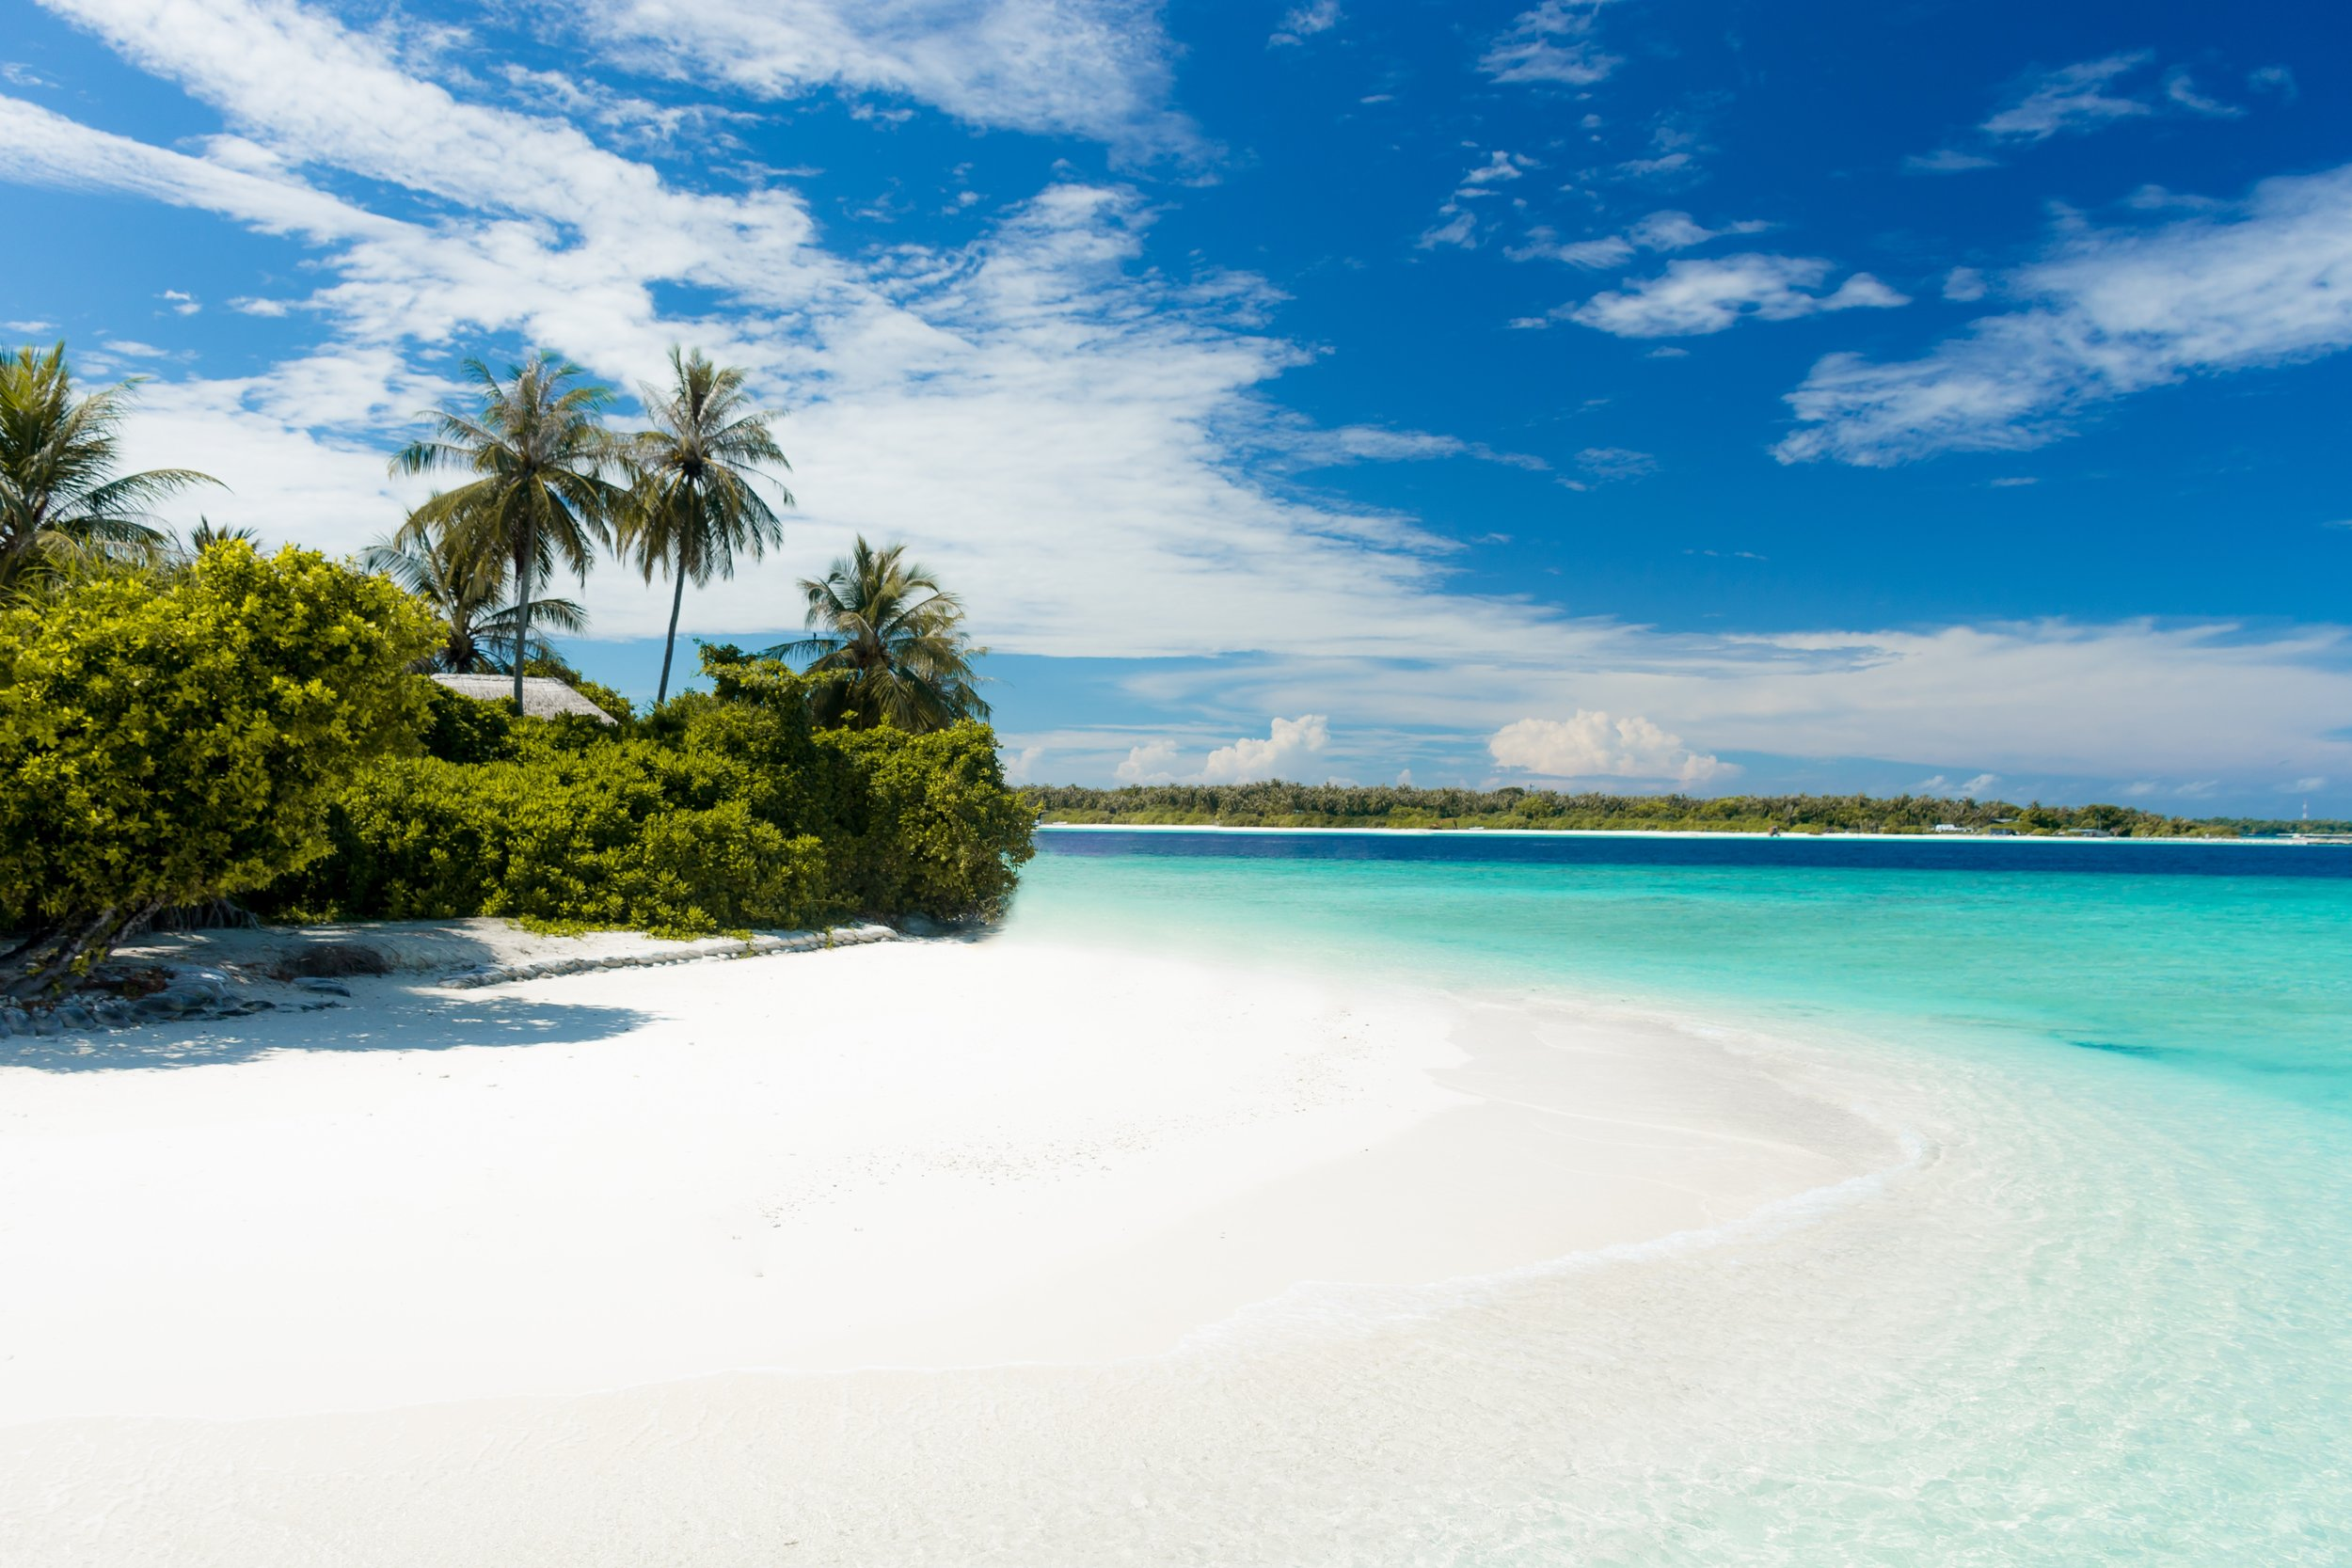 Voyager Club- What we do - Services- Exclusive Properties- Vacation Wardrobe - Lifestyle Concierge